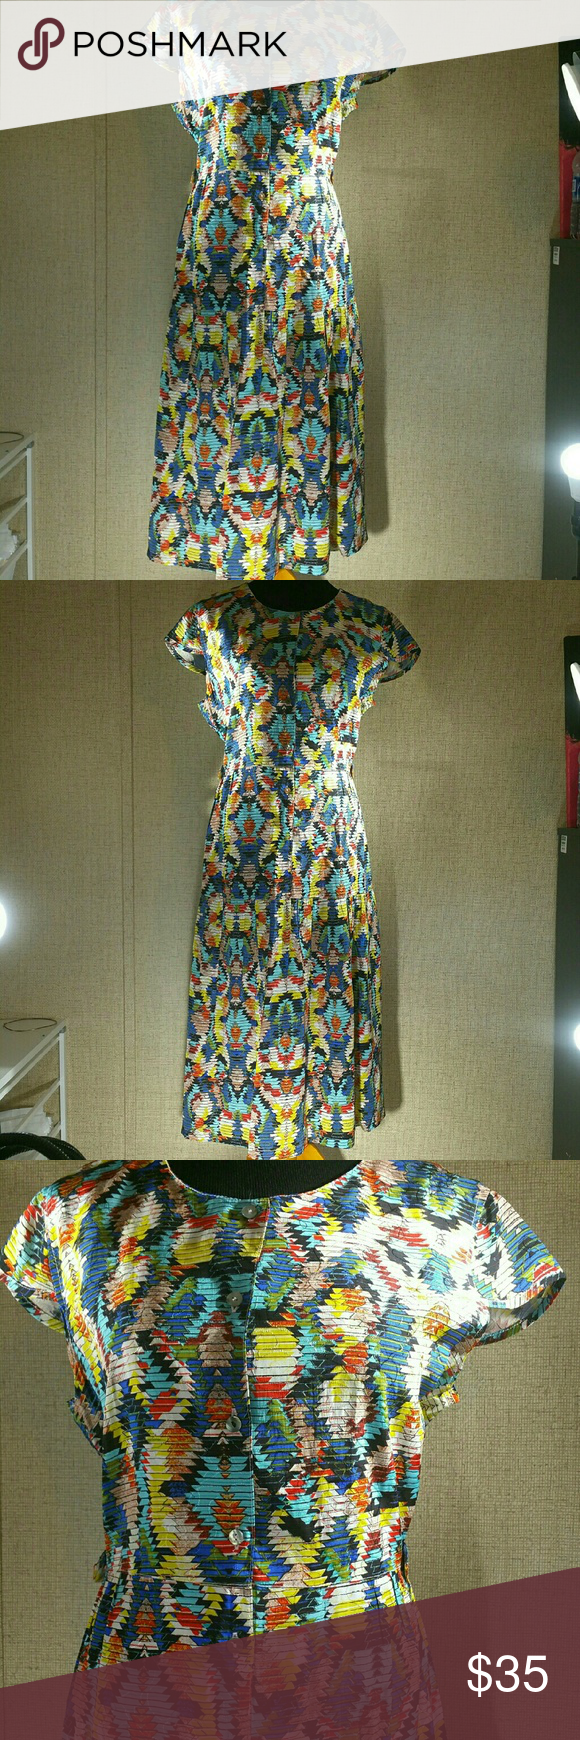 "Multi Colored Empire Waist Party Dress This dress has no tags in it so I'm not sure of size. Be sure look at the measurements to be sure the dress will fit. I wear as size 14 and it fit me   This dress is beautiful. It has an empire waist with multi colors. Even though this dress is vintage the print and style of dress is very current.  Length 43"" Armpit to Armpit 20 Vintage Dresses"